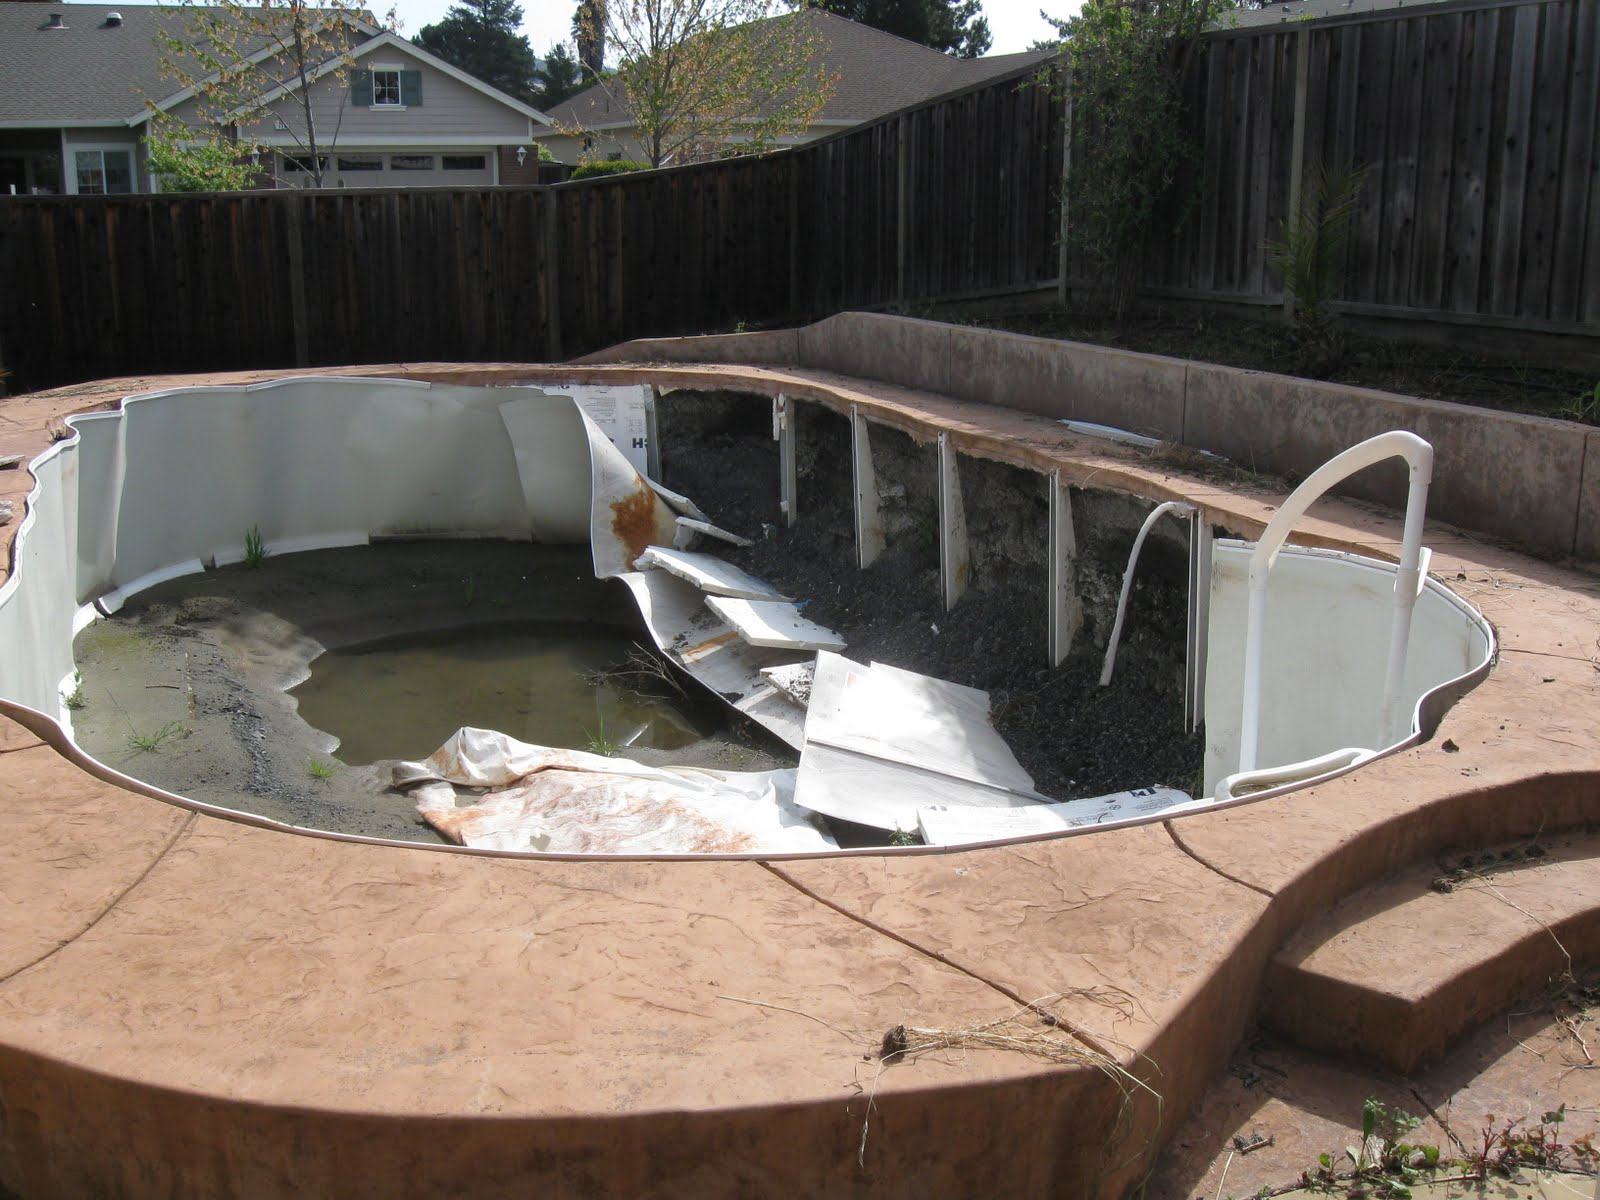 This above ground pool that was buried collapsed under the weight of the backfill once the water was removed from the pool.